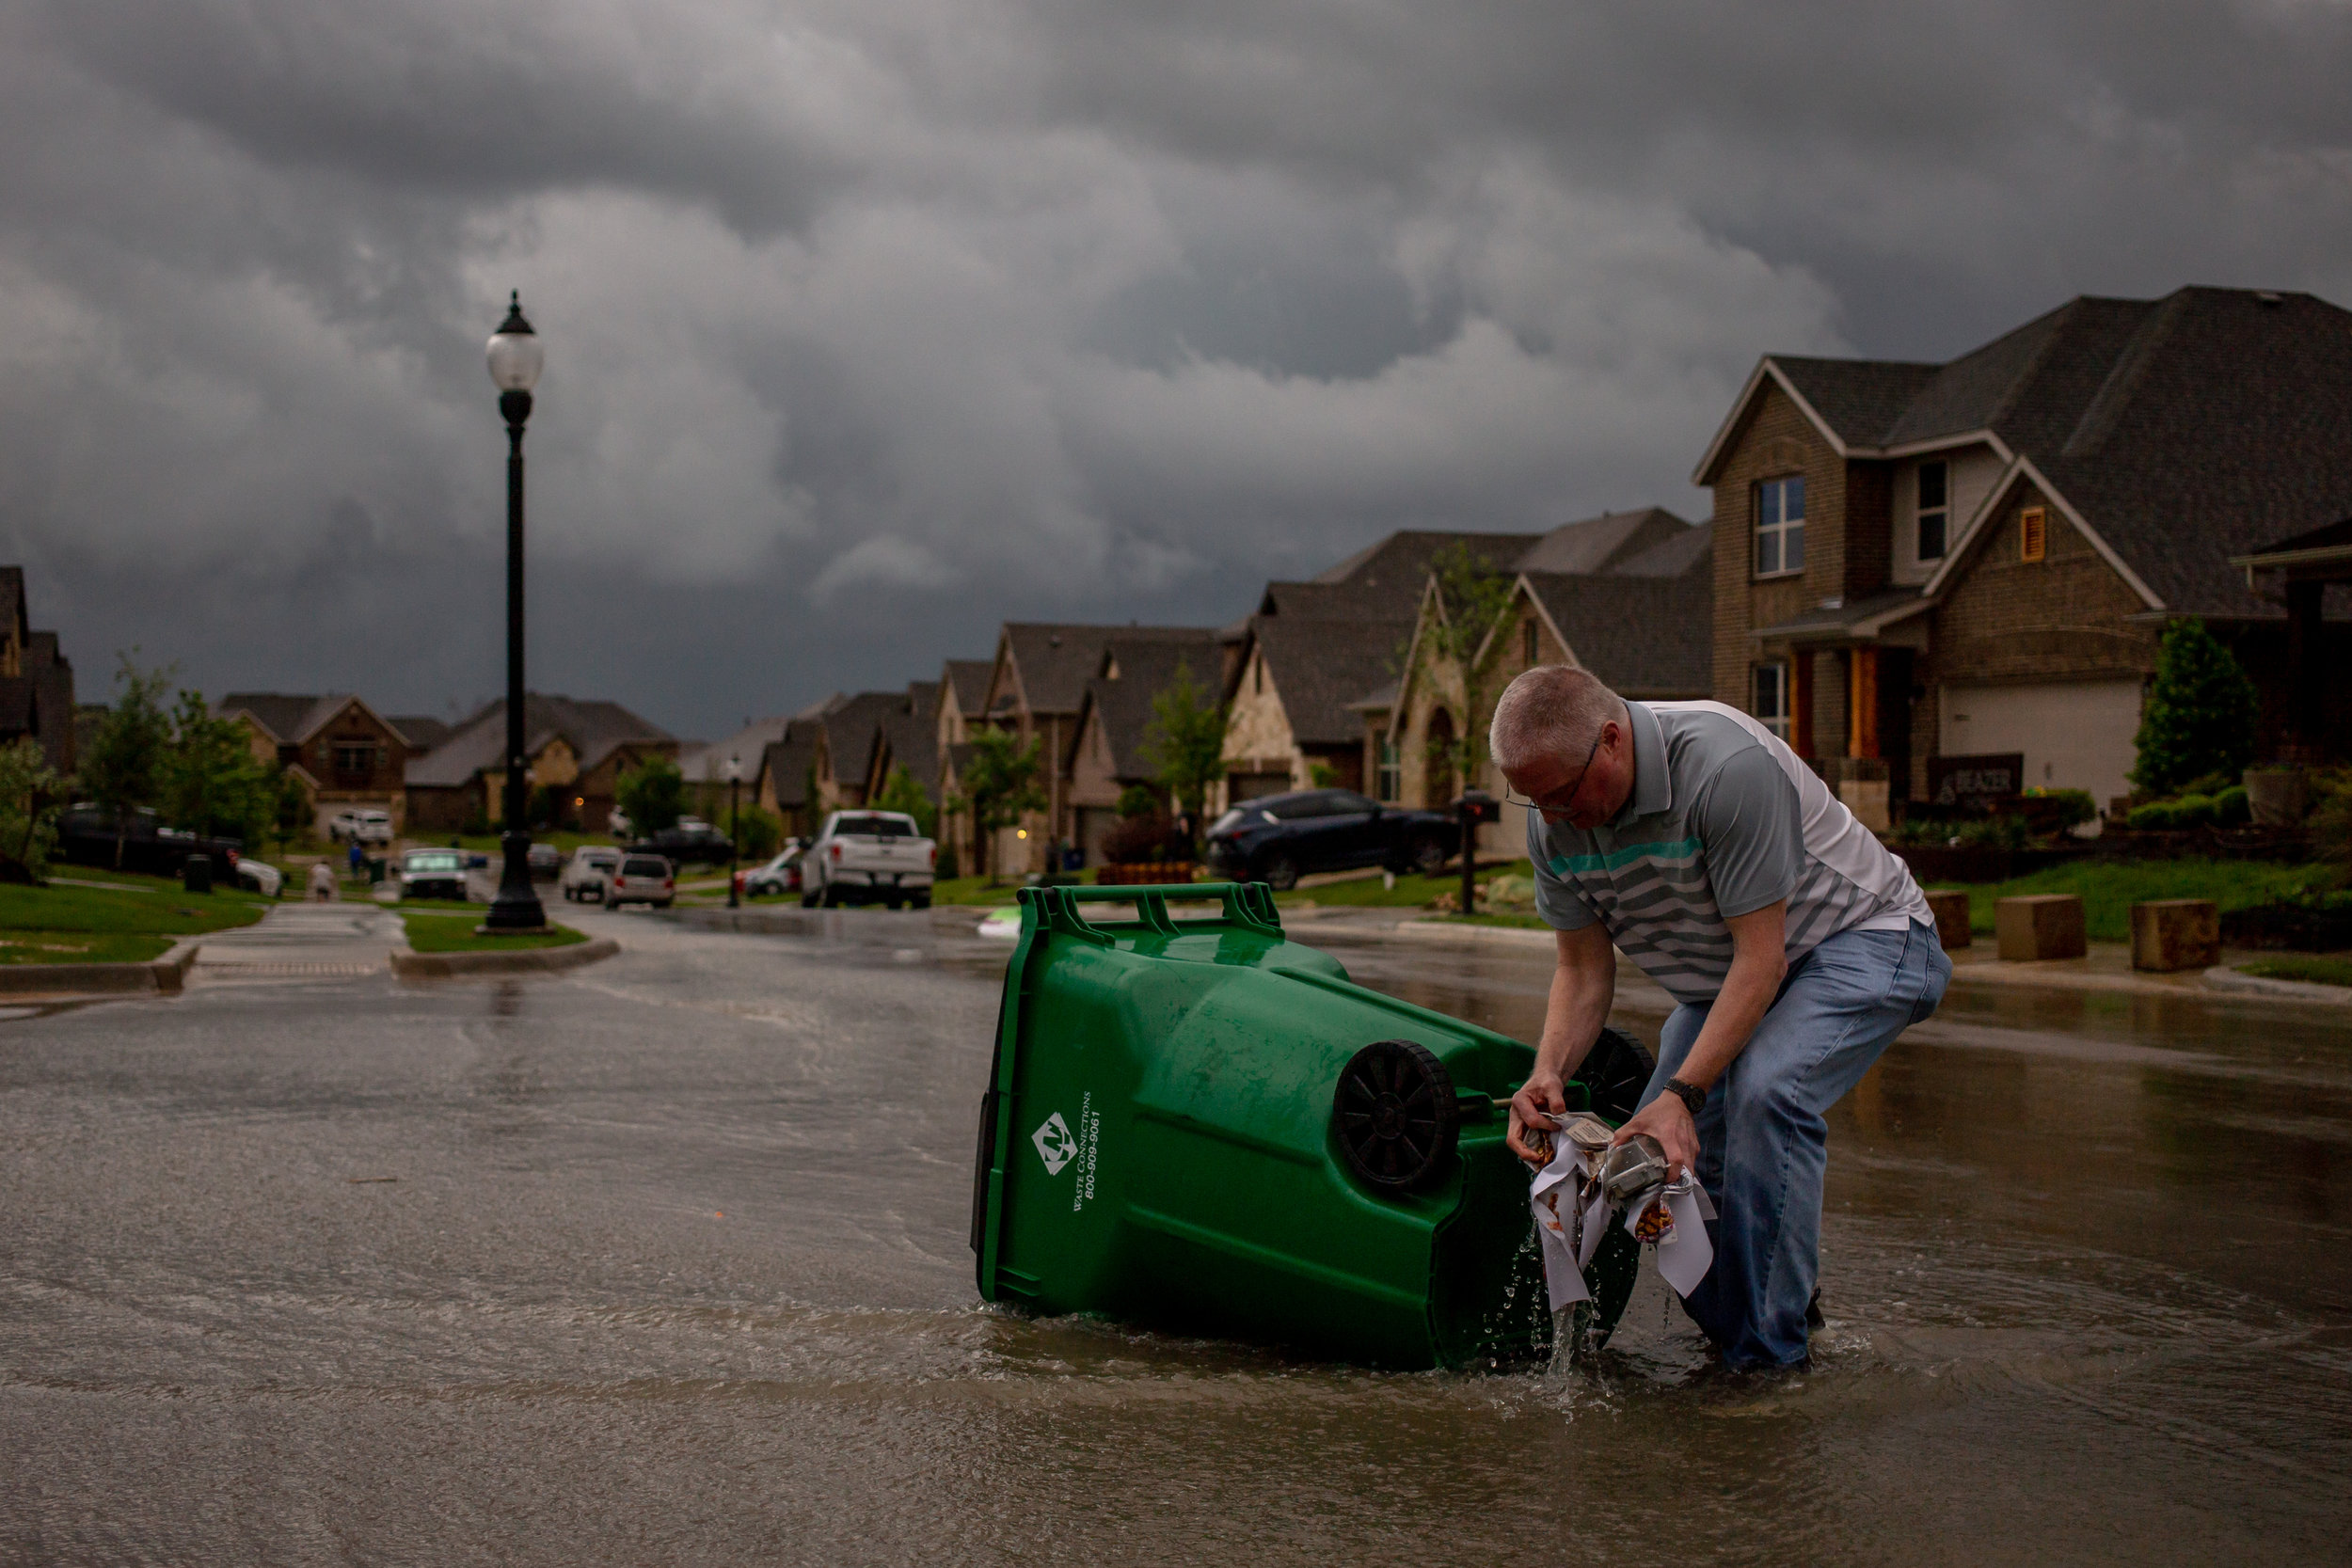 APRIL 30, 2019 | A CANYON FALLS RESIDENT RETRIEVES HIS TRASH CAN THAT PICKED UP AND BLEW AWAY DURING A TORNADO IN NORTHLAKE, TEXAS.